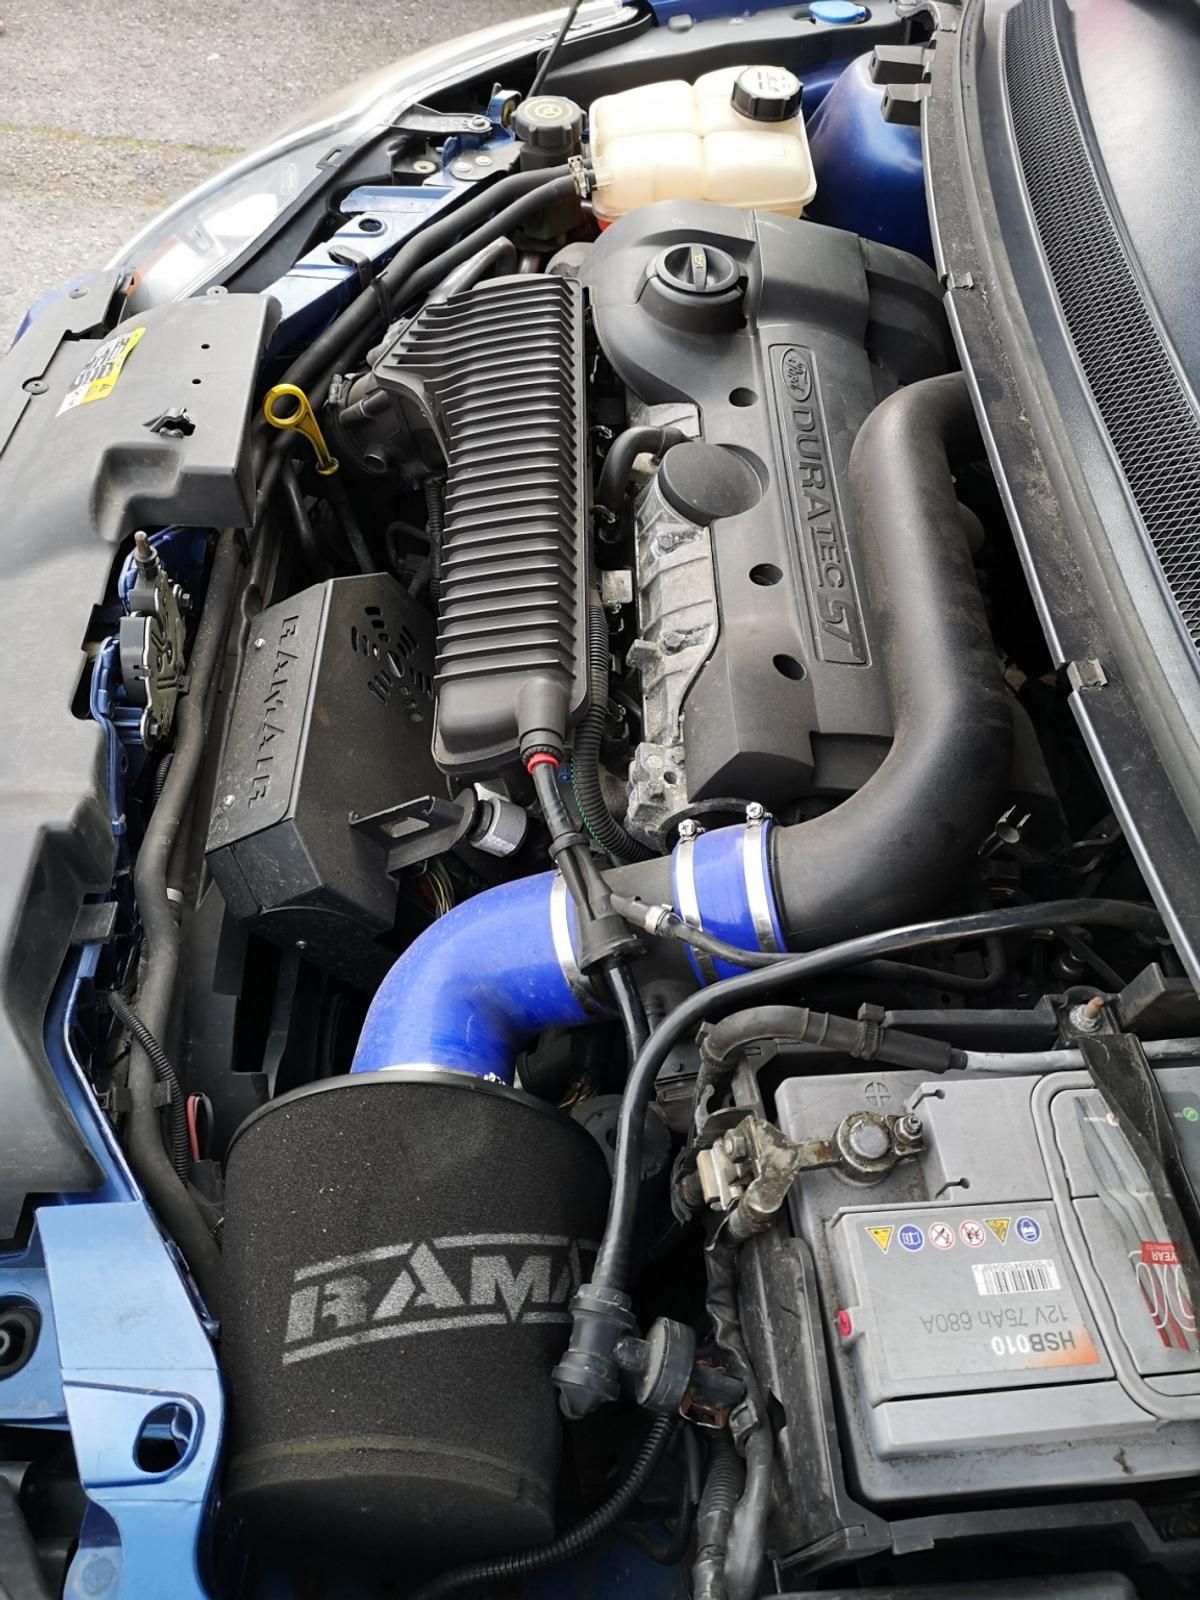 Ford Focus St Mk 2 Facelift Modified Px Swap In Barnsley For